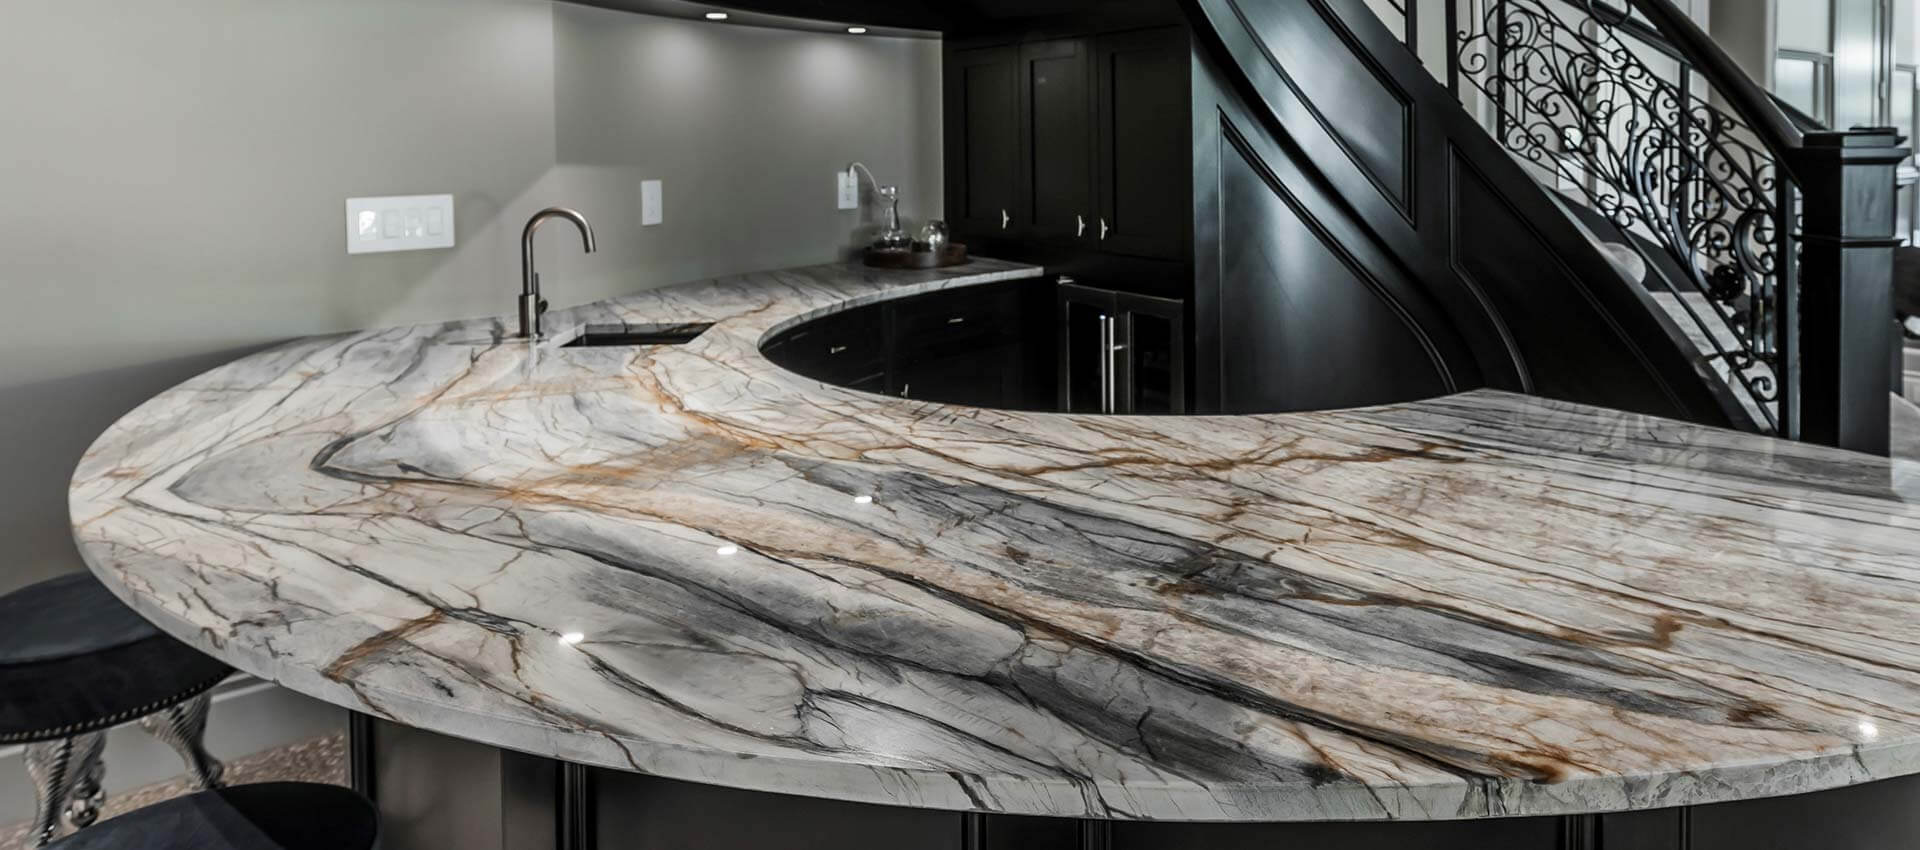 Custom Countertops In Ohio Distinctive Marble And Granite